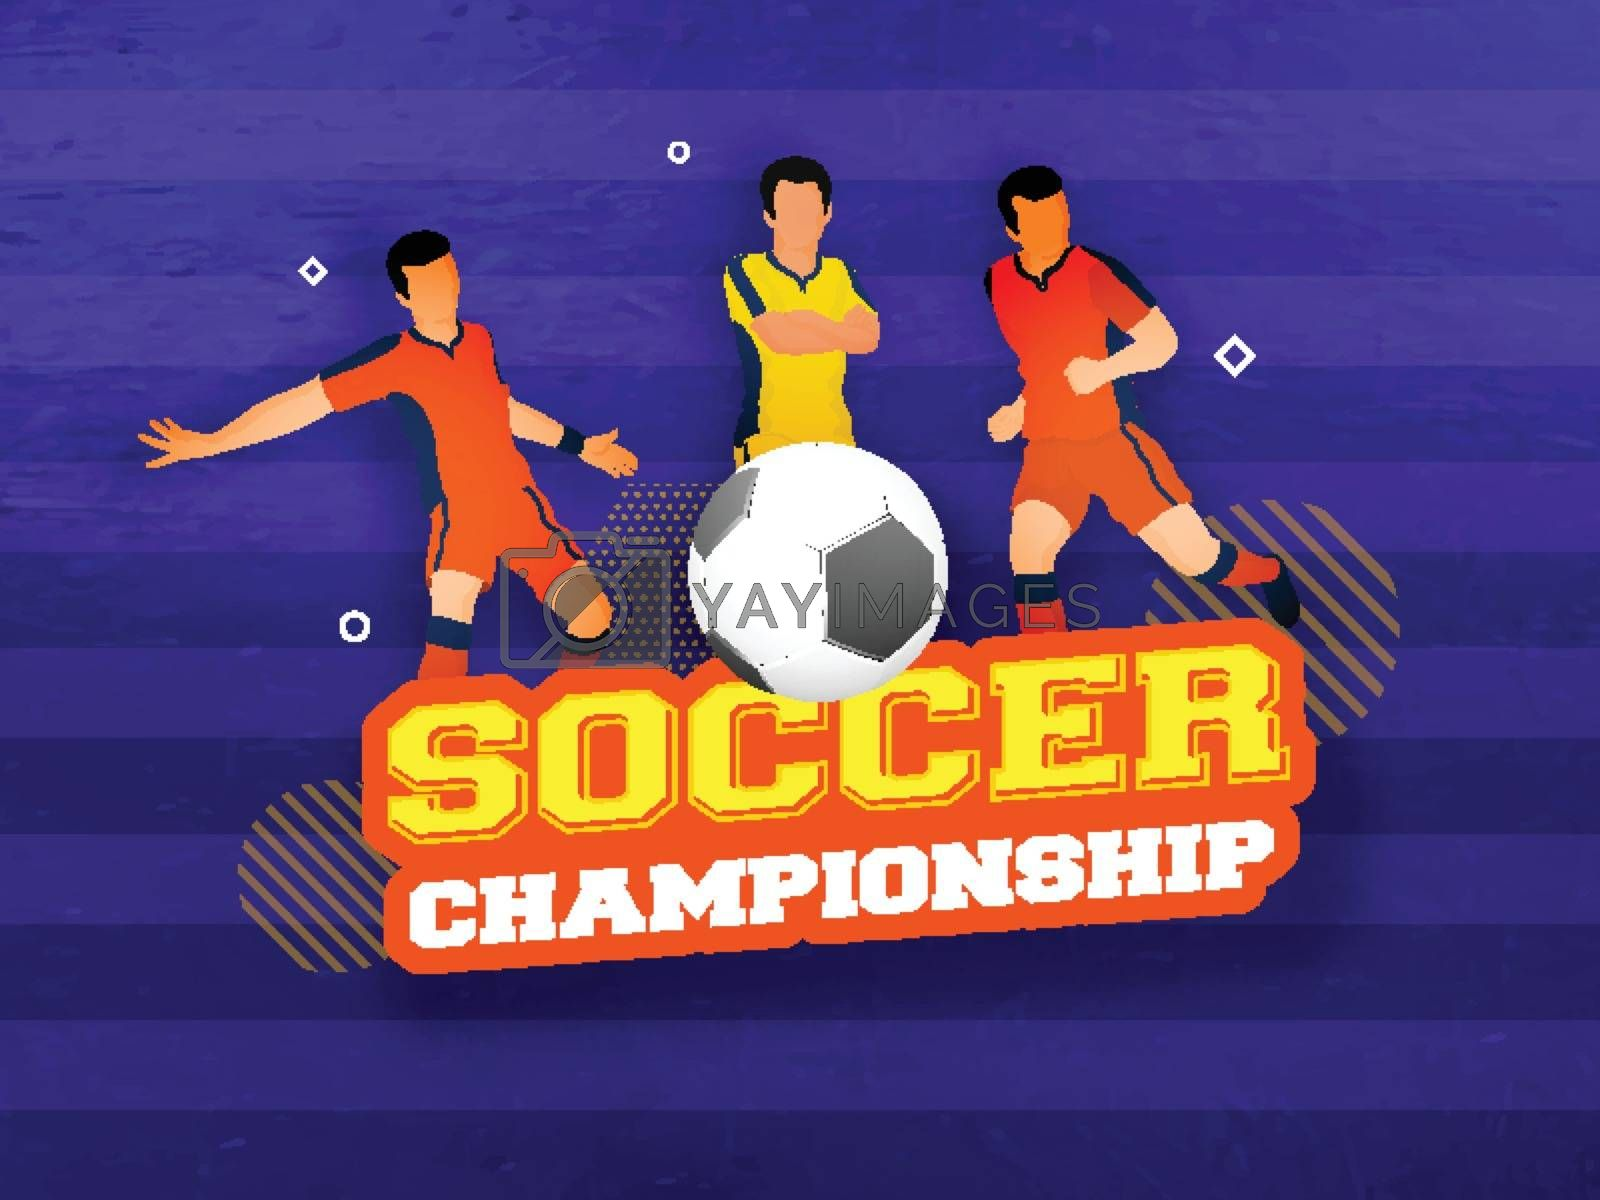 Royalty free image of Soccer Championship banner or poster design with footballers cha by aispl